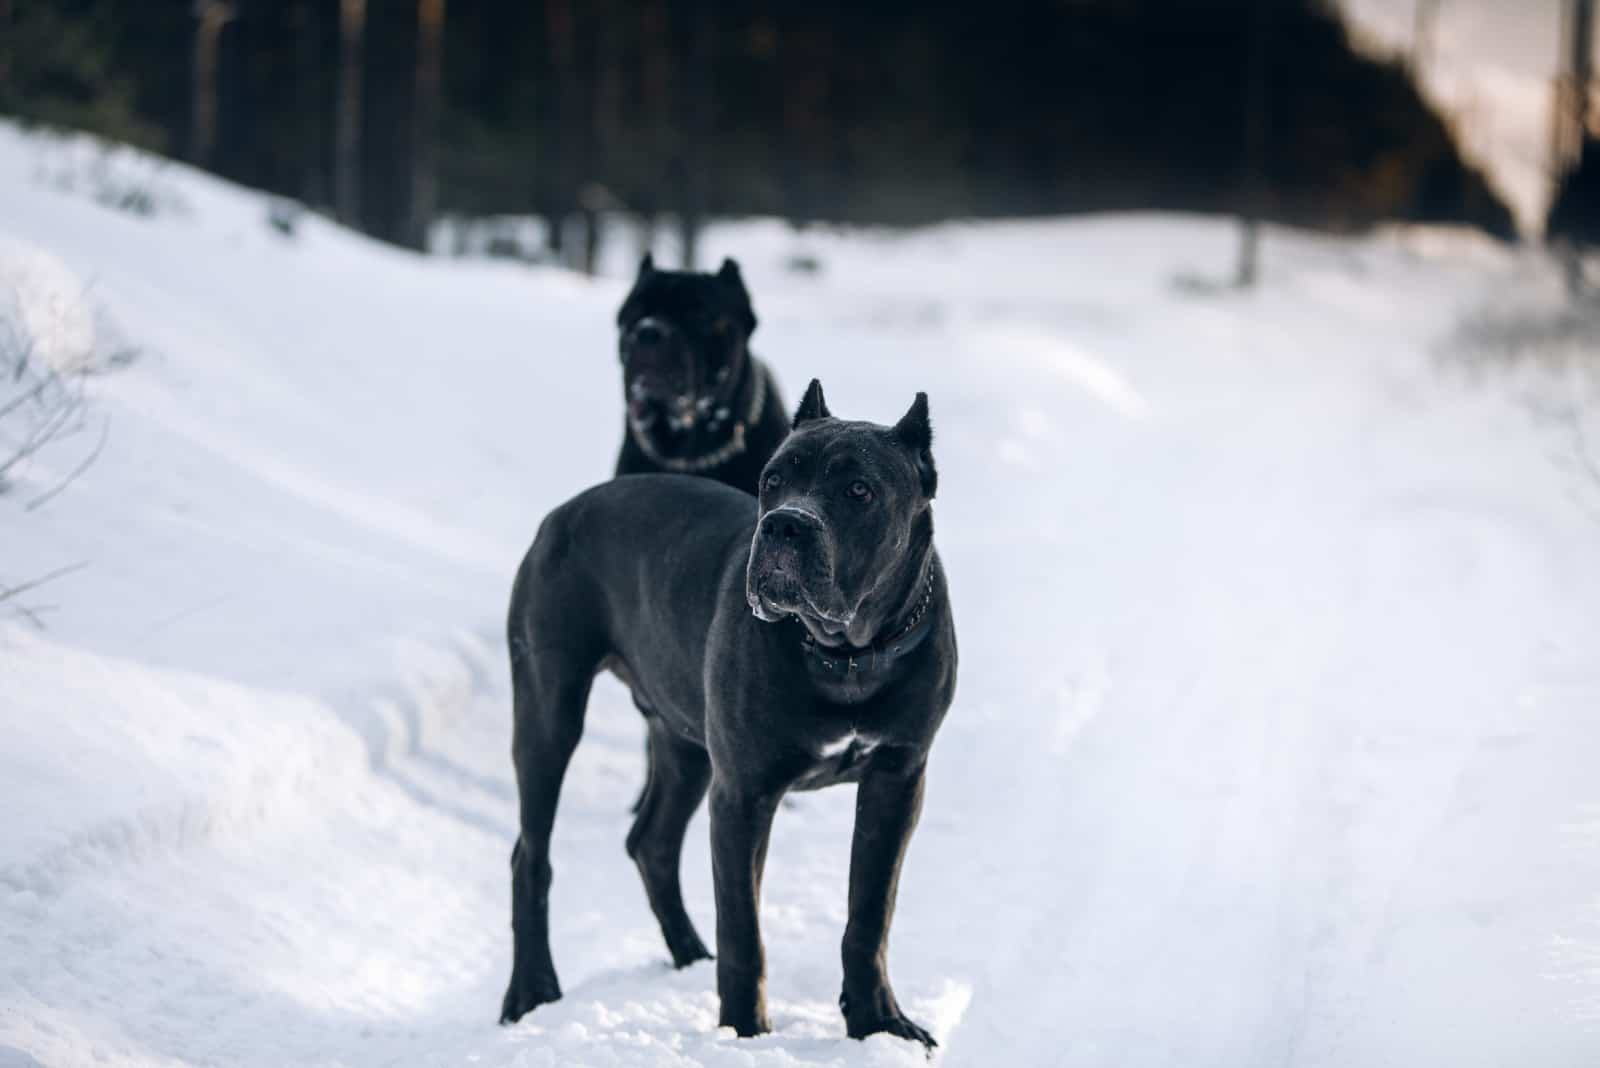 two cane corso dogs are standing in snow